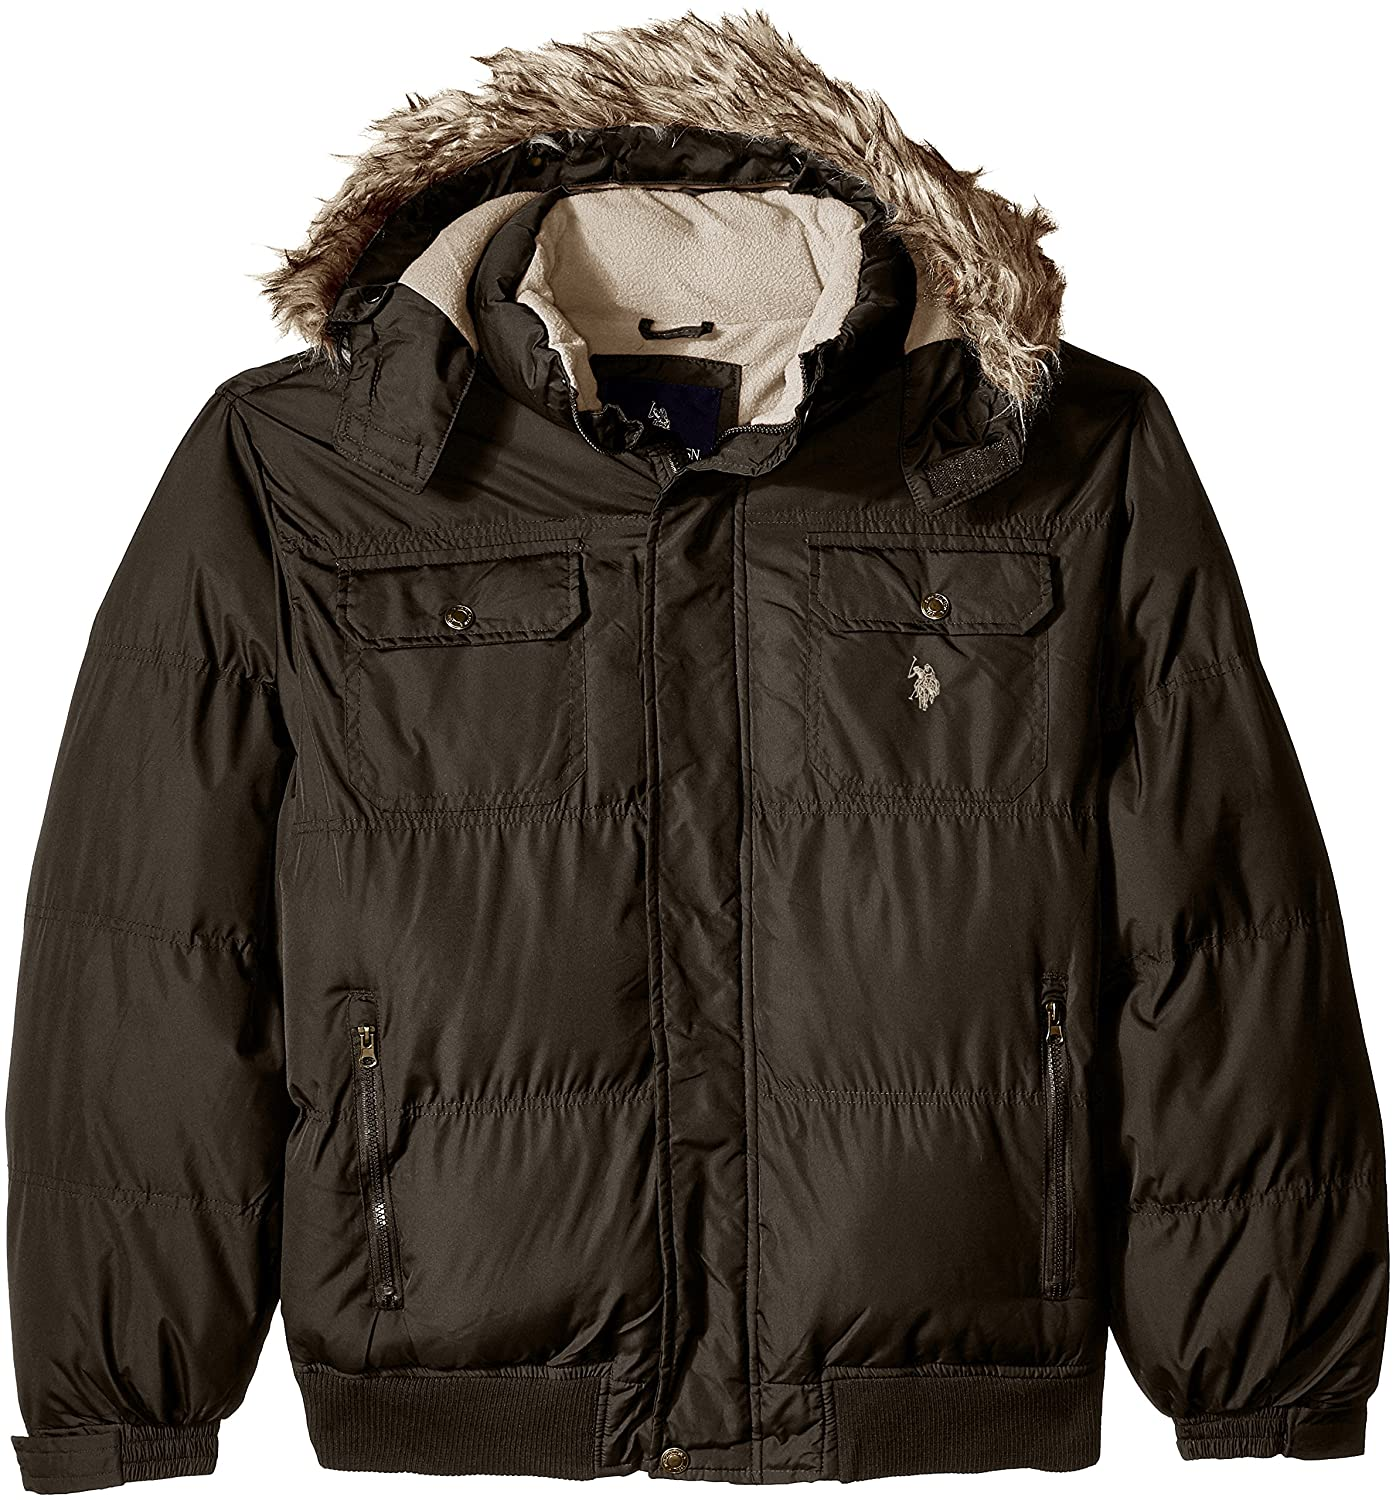 U.S. Polo Assn. OUTERWEAR メンズ B01LCMEHSA 2X|Dark Brown Gjbk Dark Brown Gjbk 2X